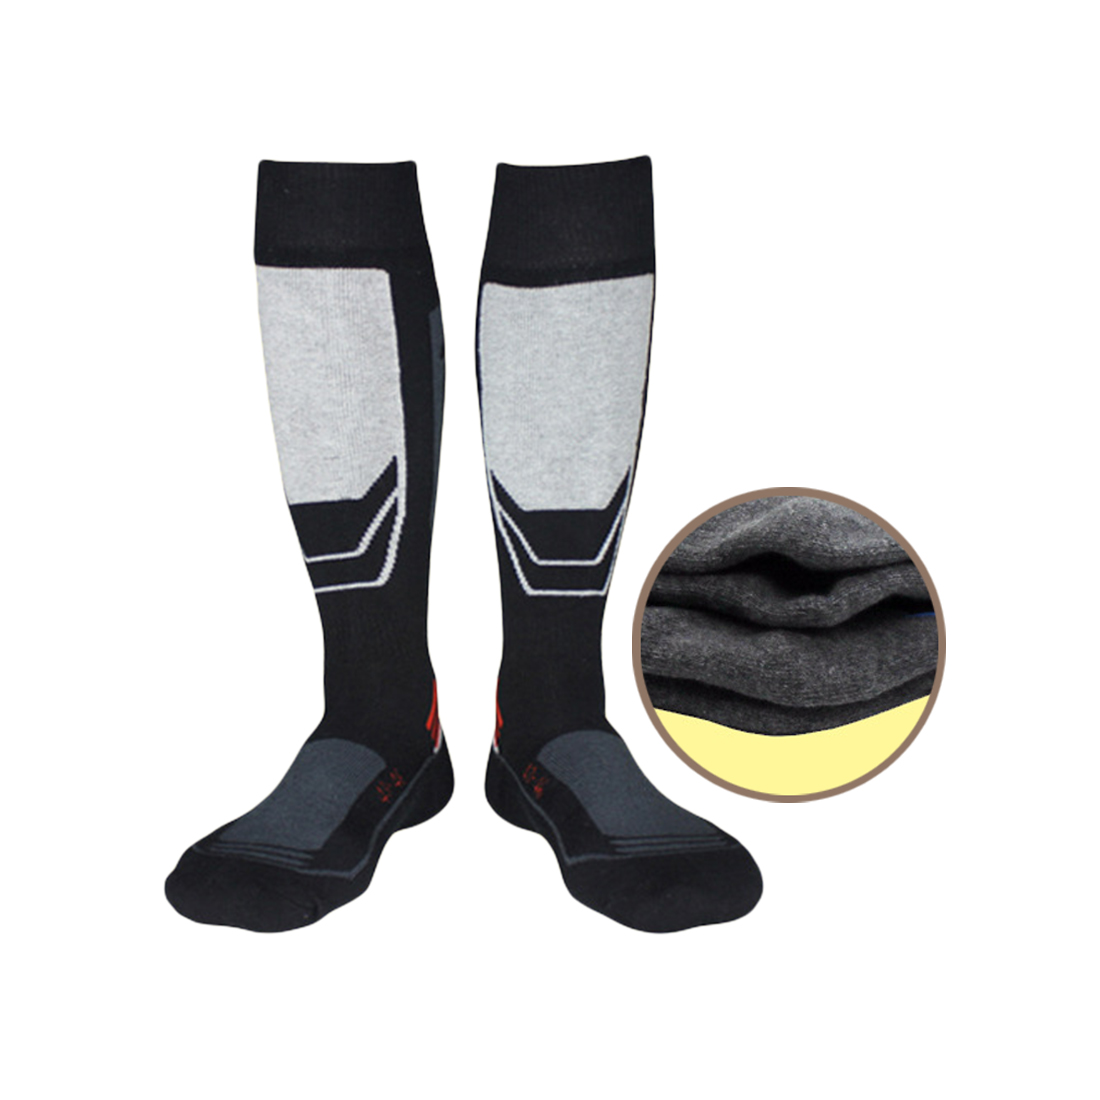 Top Quality Winter Warm Men Thermal Ski Socks Thick Cotton Sports Snowboard Skiing Soccer Socks Thermosocks Leg Warmers